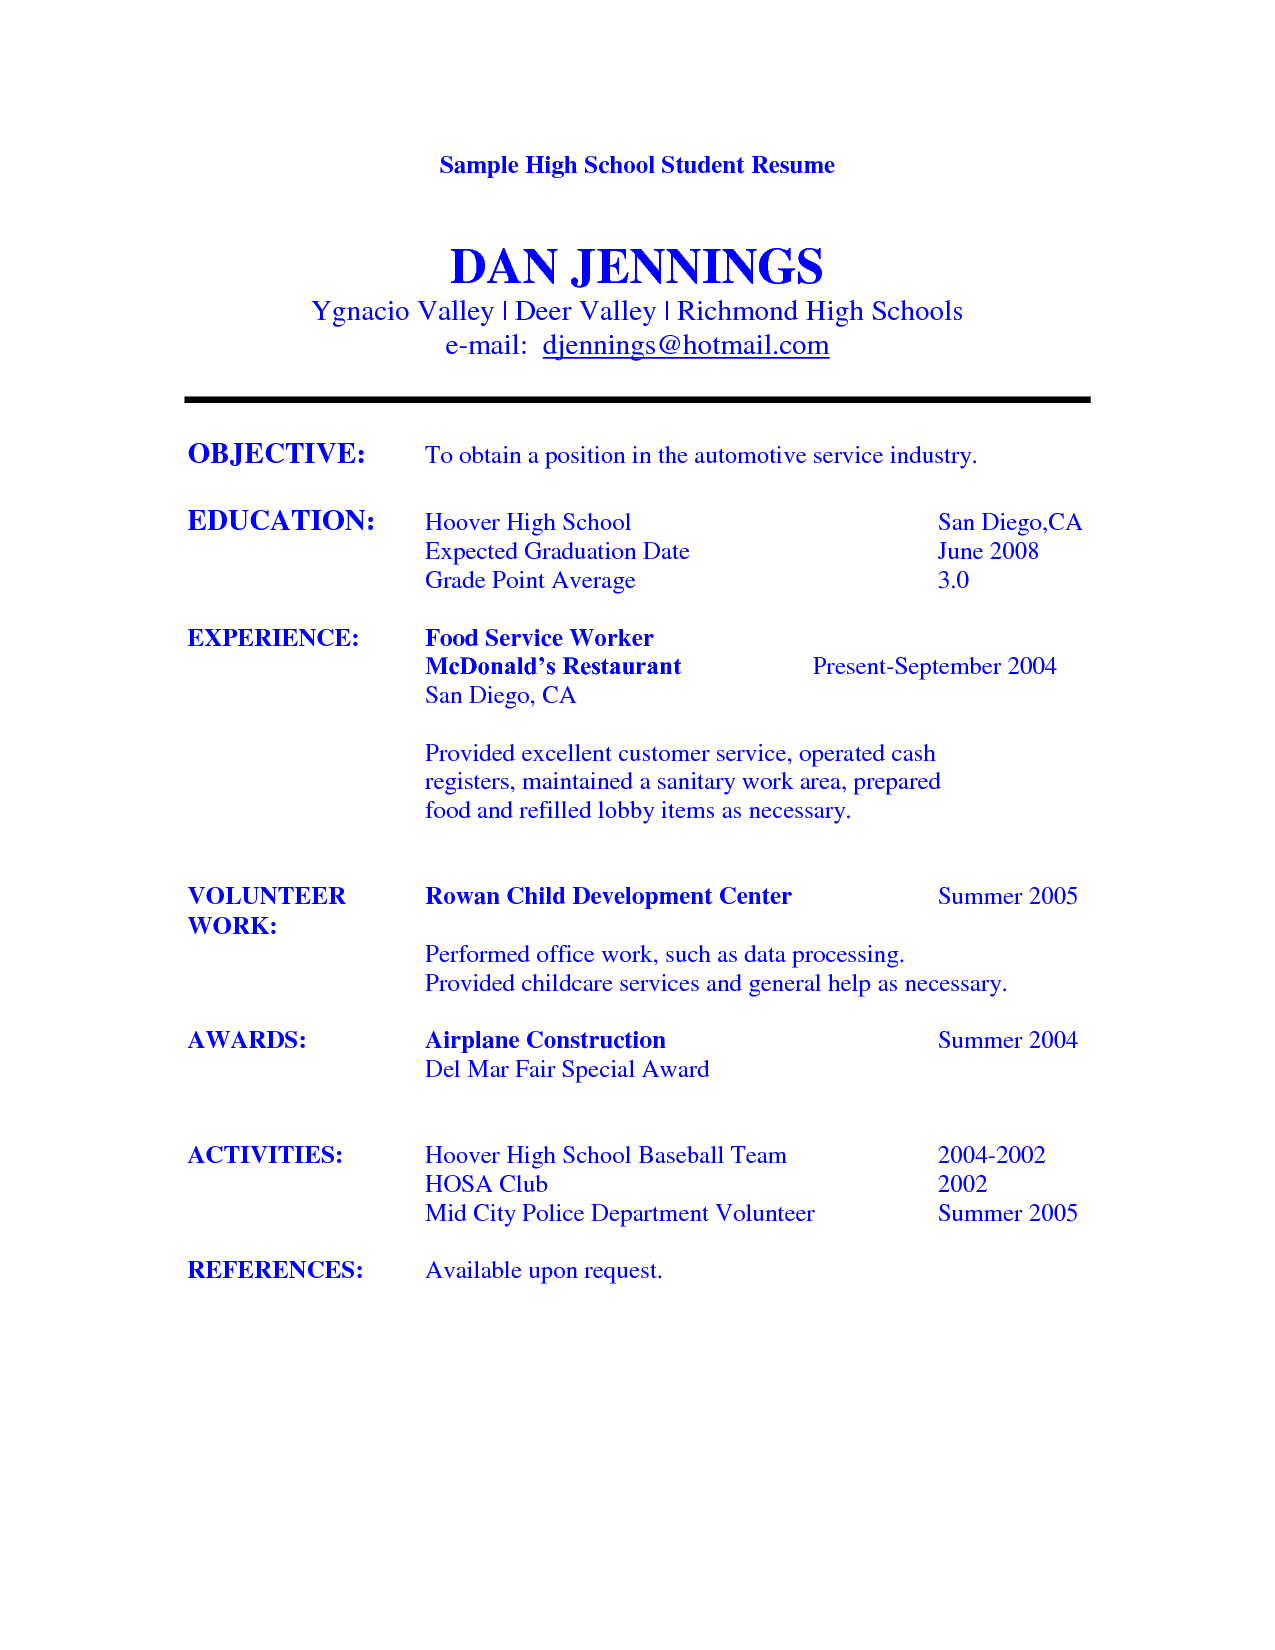 Sample Resume Templates Resume Example For High School Student Sample Resumes  Httpwww